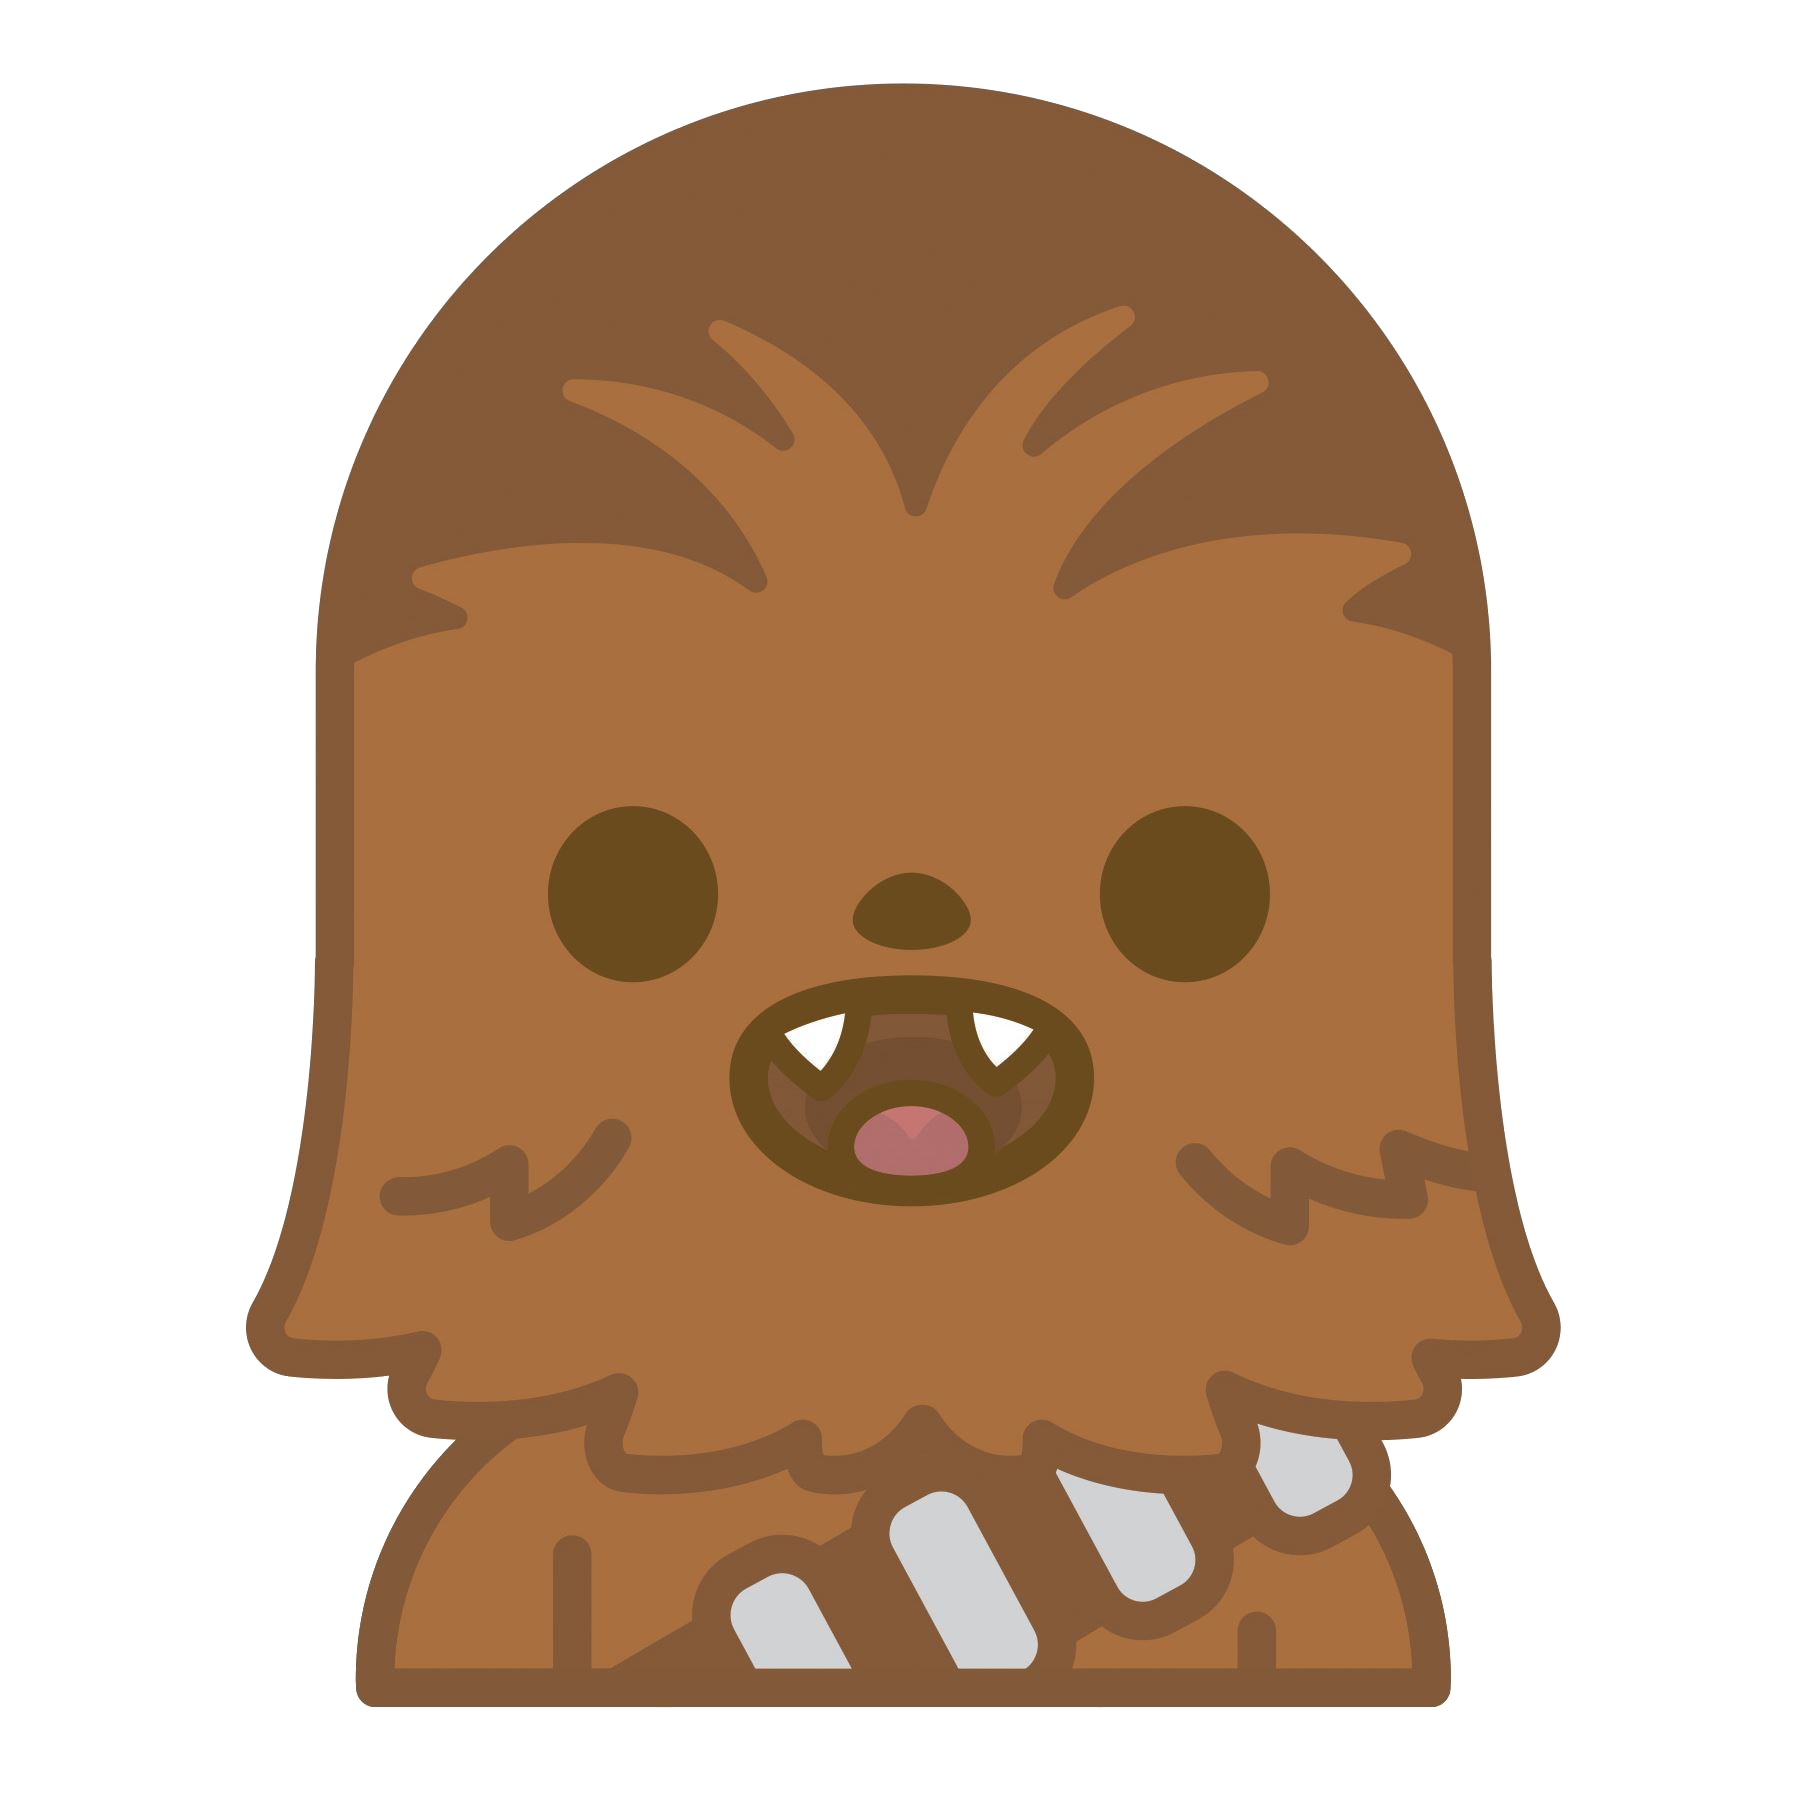 Free star wars chewie clipart clip stock 28+ Collection of Star Wars Clipart Images | High quality, free ... clip stock